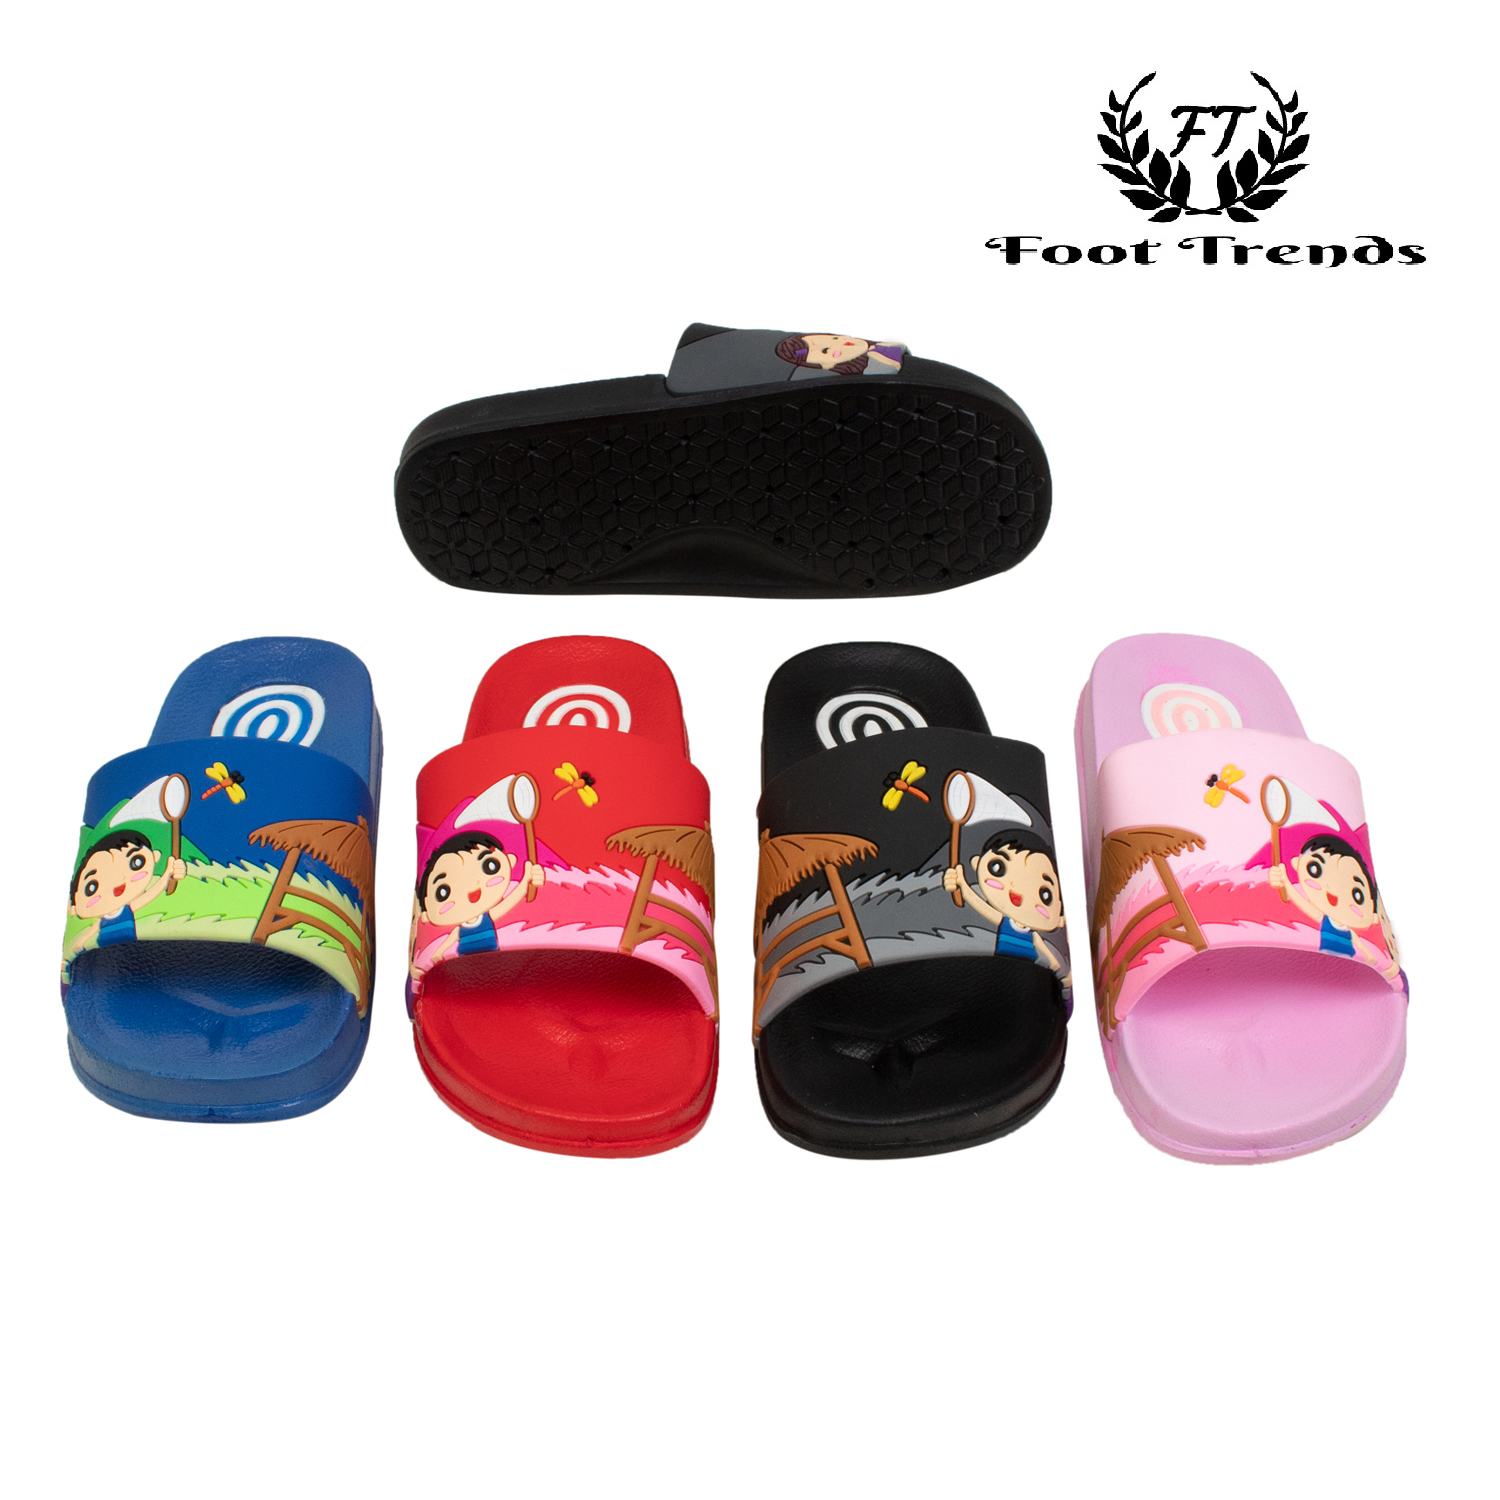 Foot Trends Casual Slippers For Kids B-G-Multi-26-30 (Multi, 26-30, 10 PAIR)